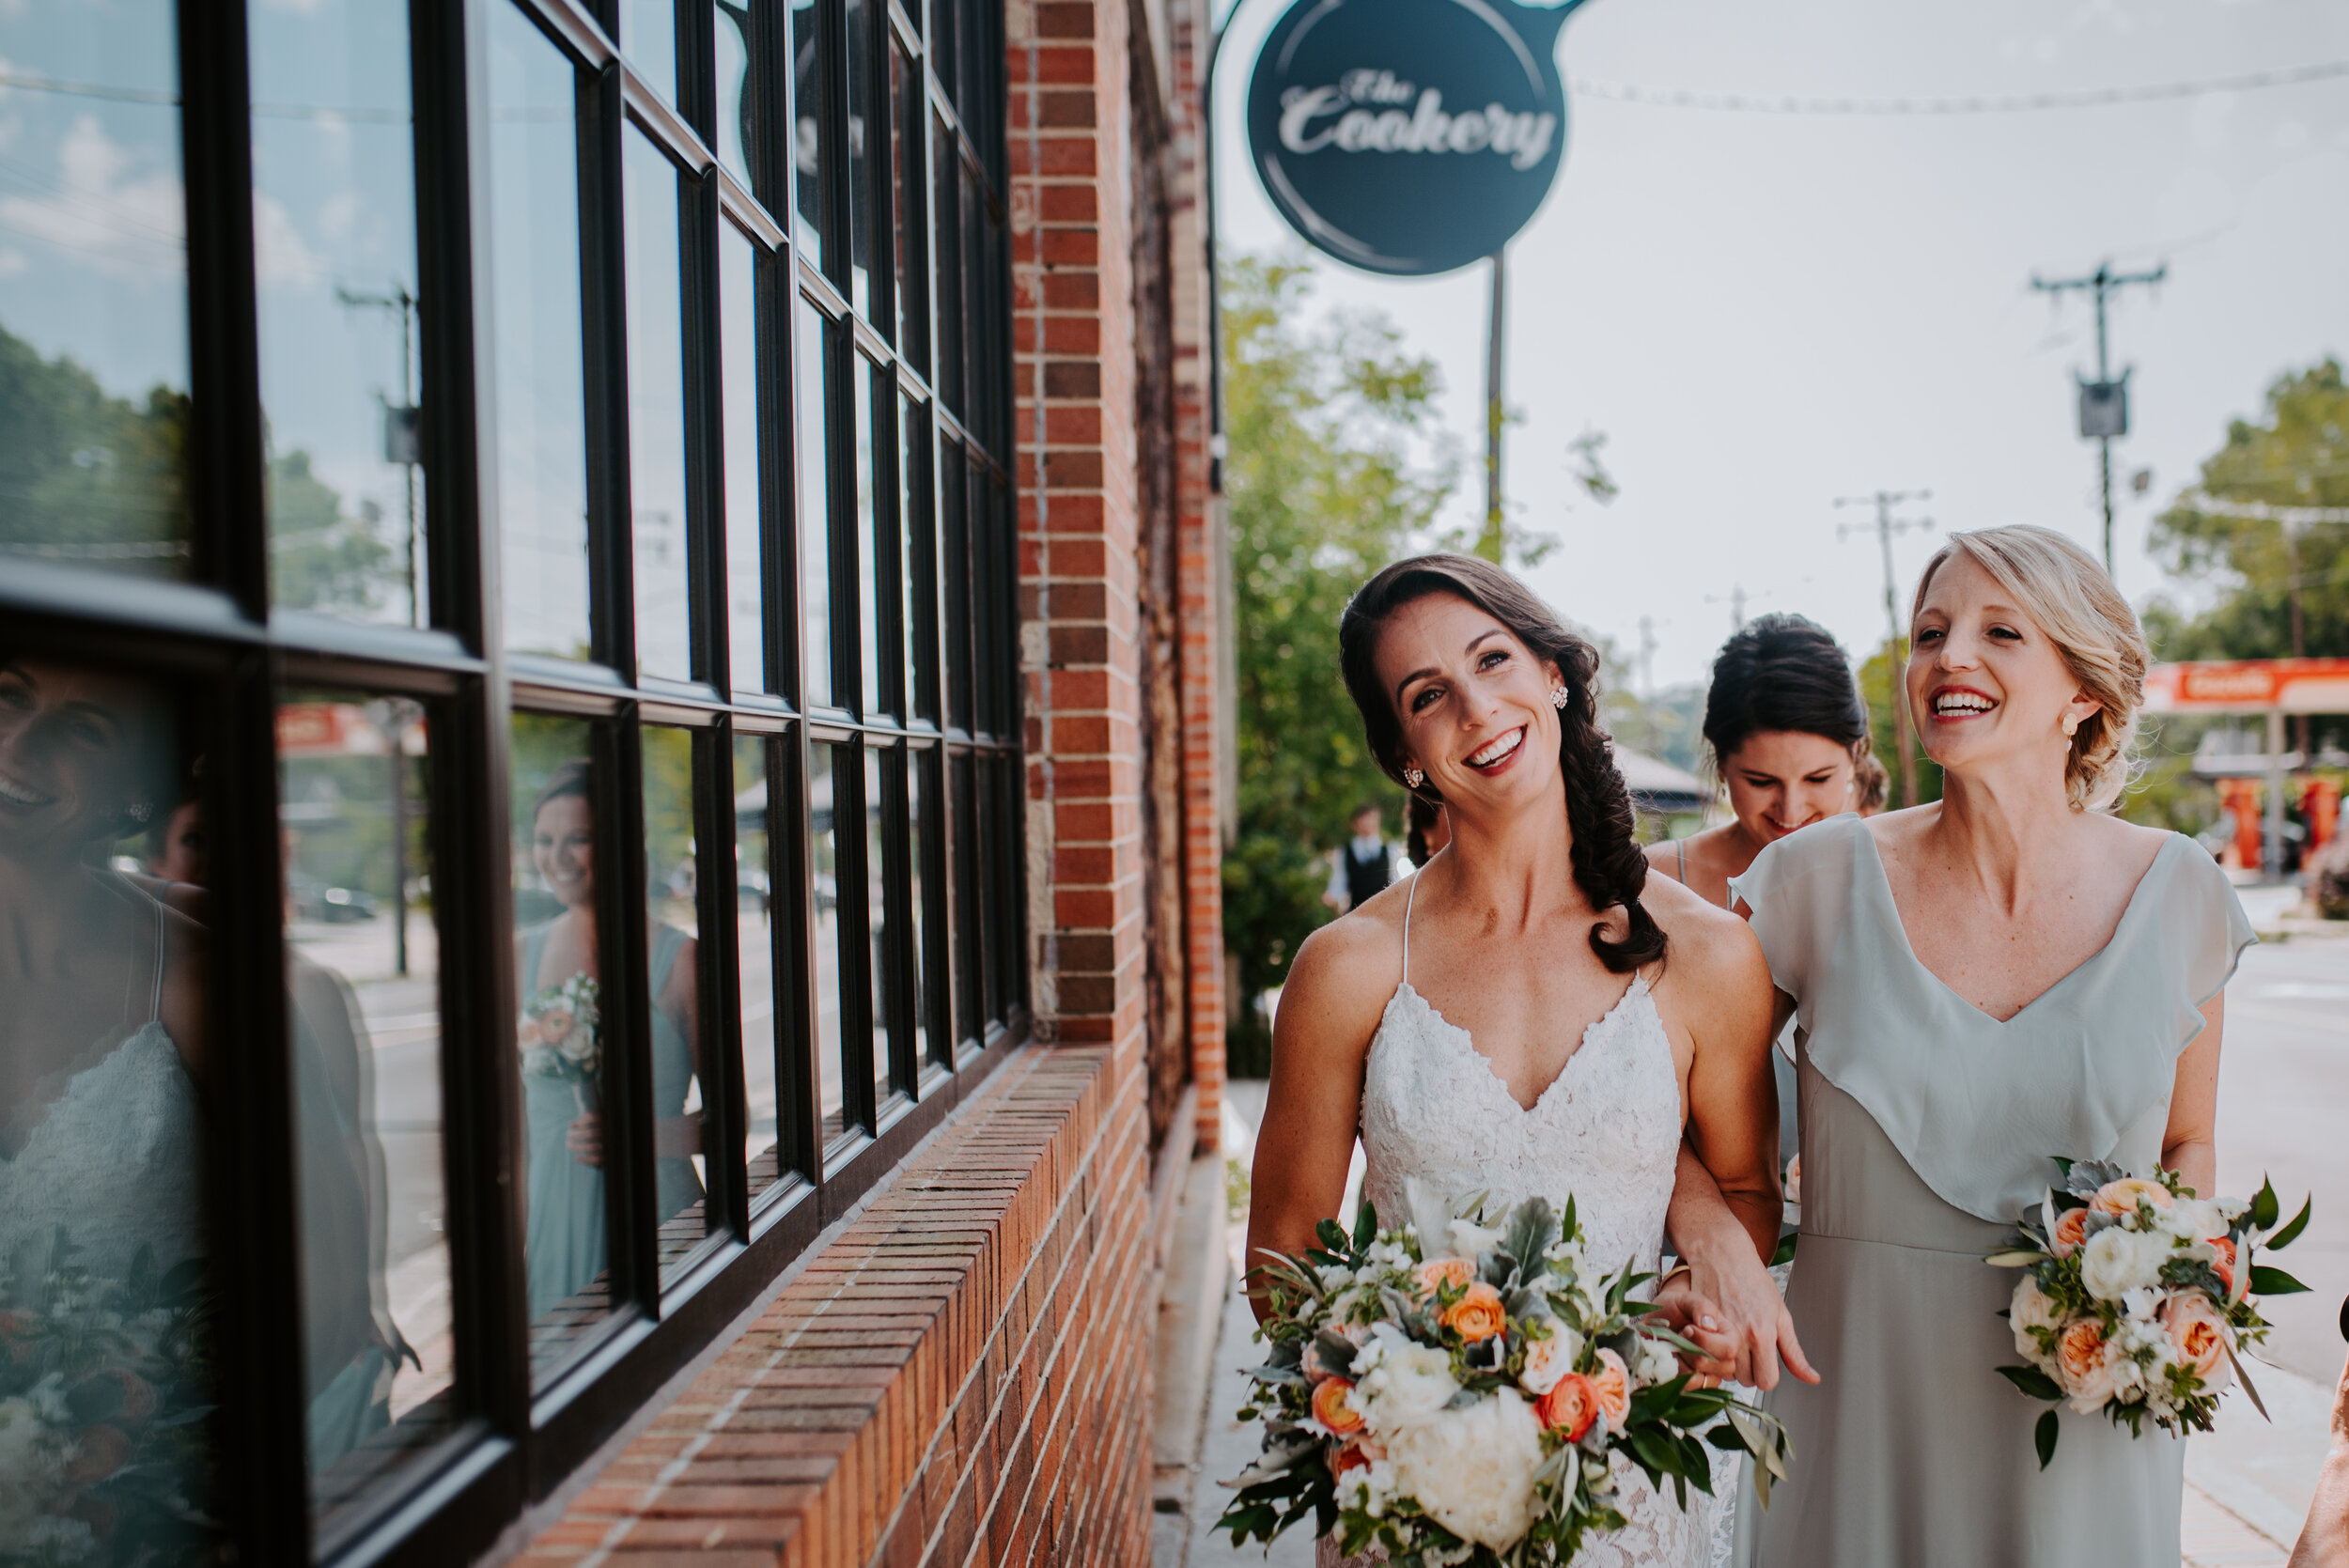 The Cookery Wedding - Durham Wedding Photographer - Durham Wedding Photography - North Carolina Wedding Photographer - North Carolina Photography - The Cookery Wedding Venue - Durham Wedding Venue